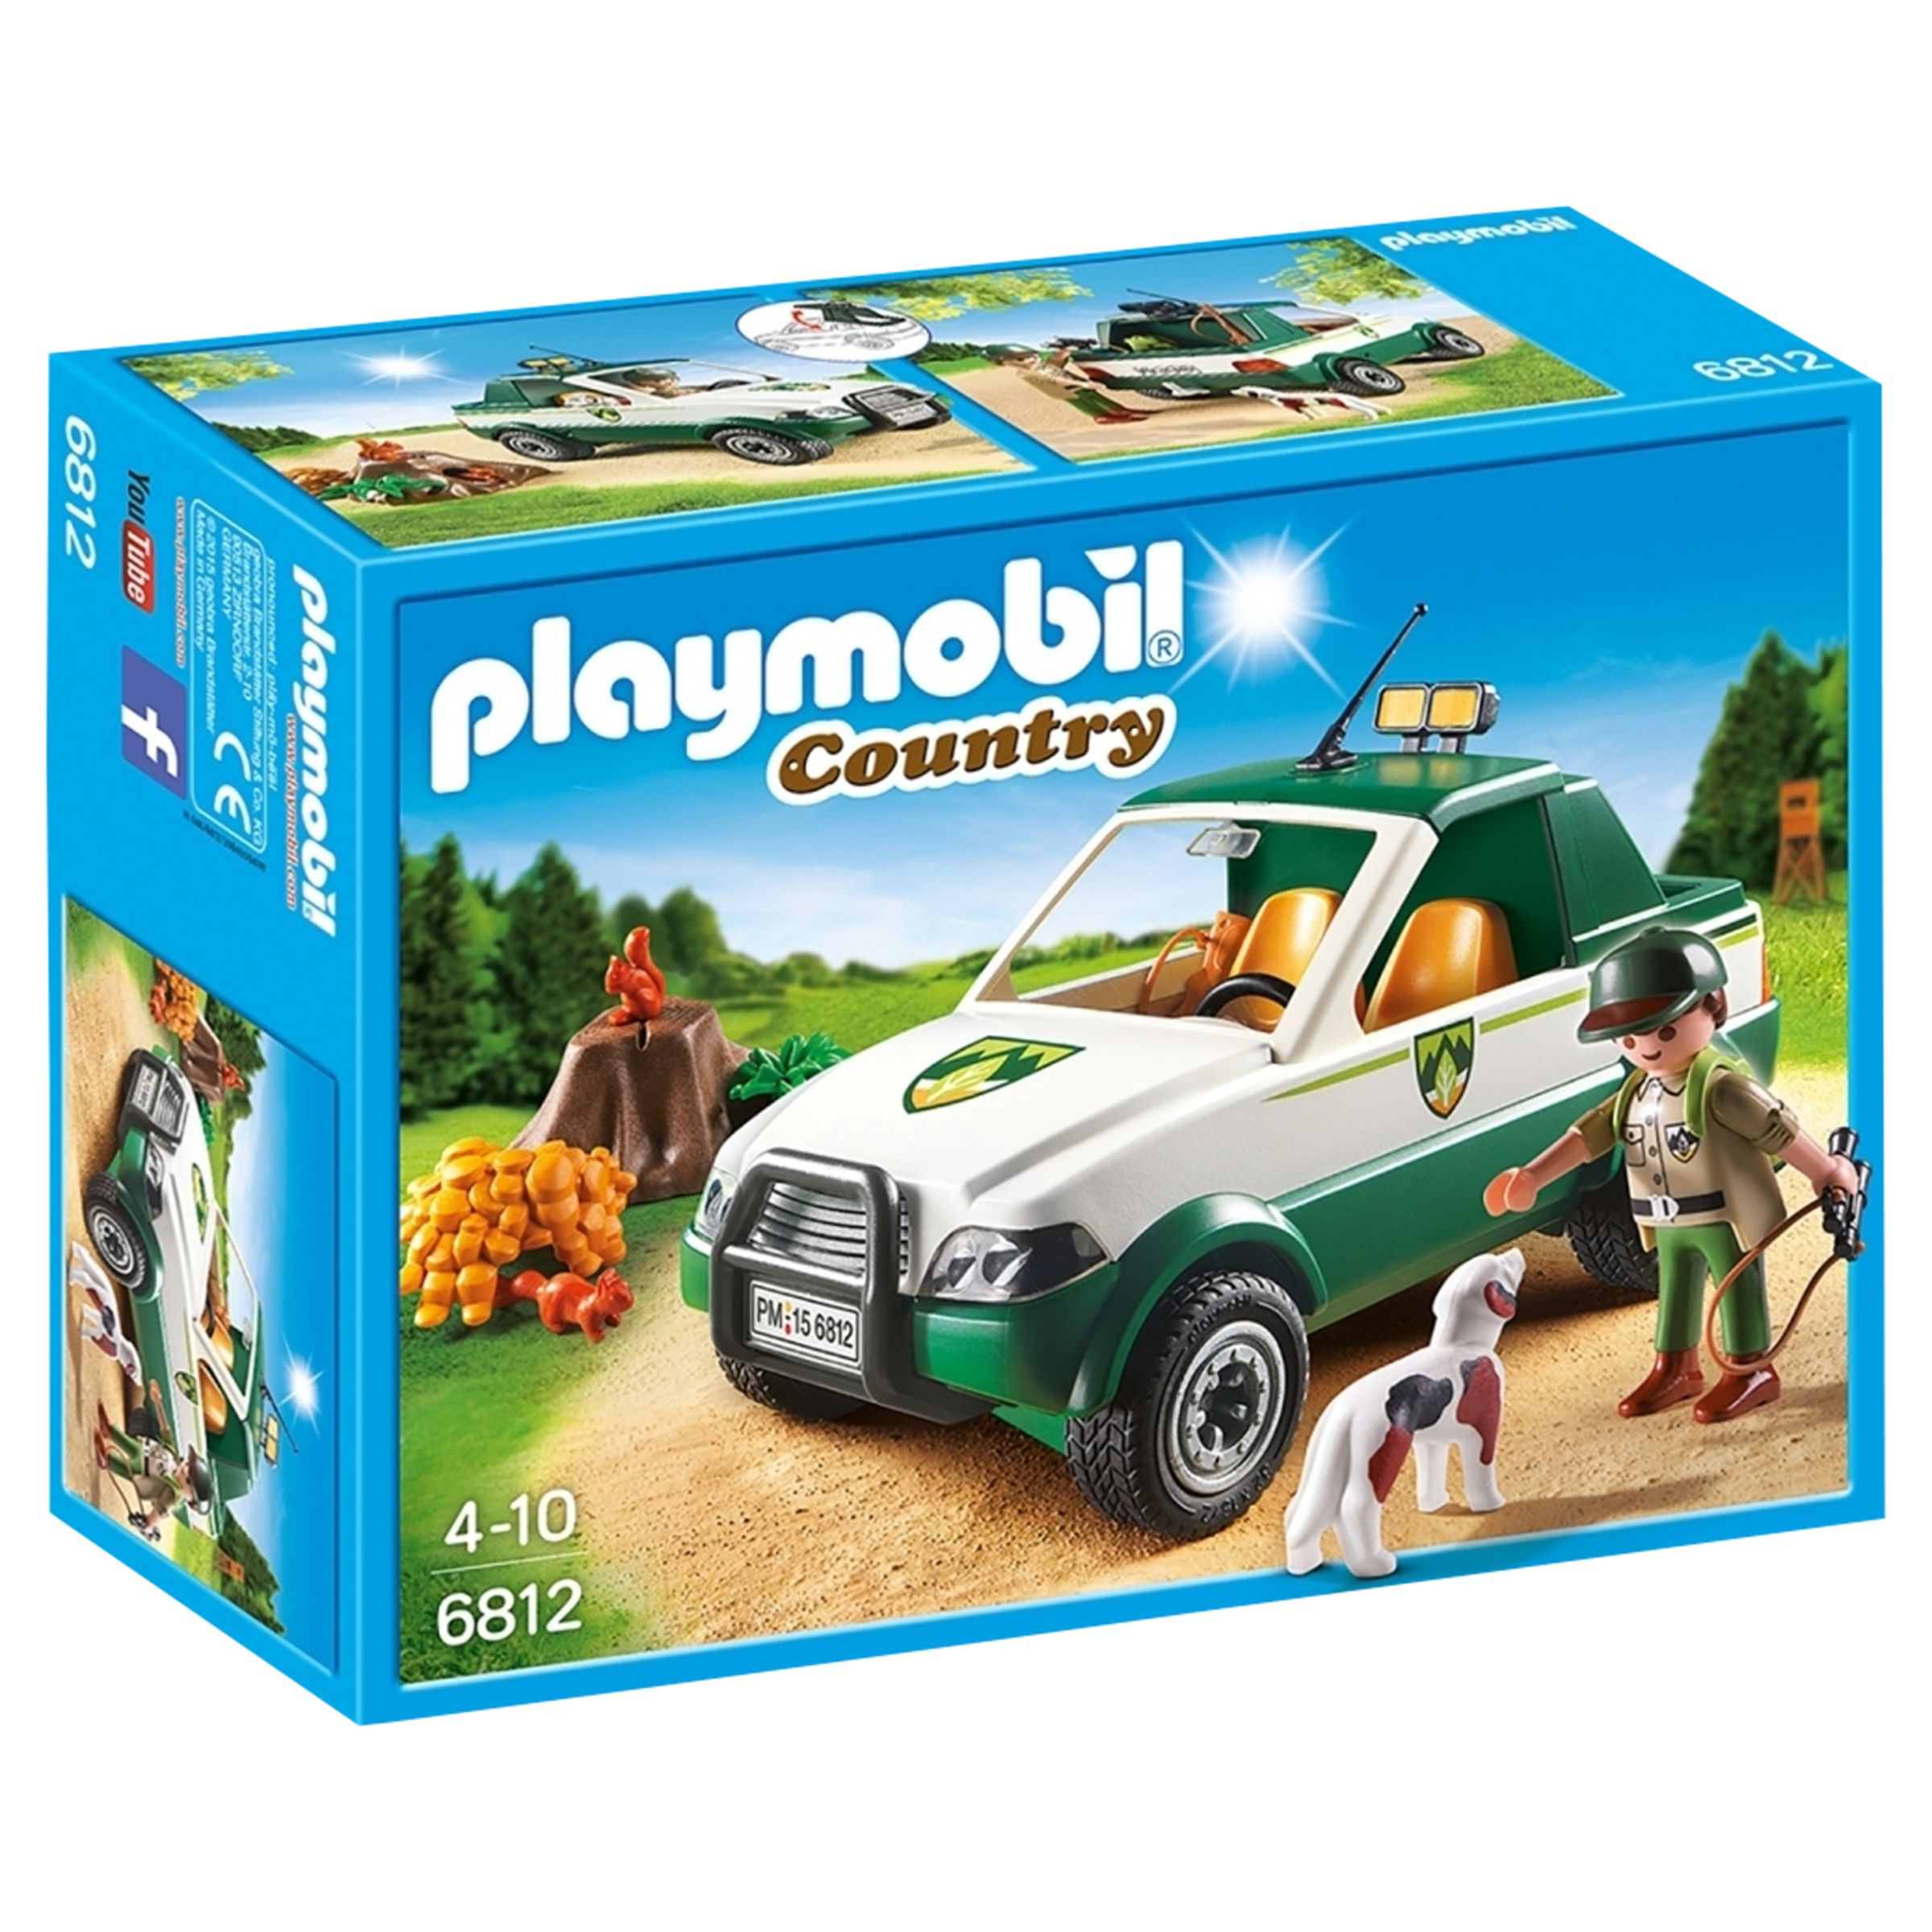 PLAYMOBIL Playmobil Country Forest Pick Up Truck